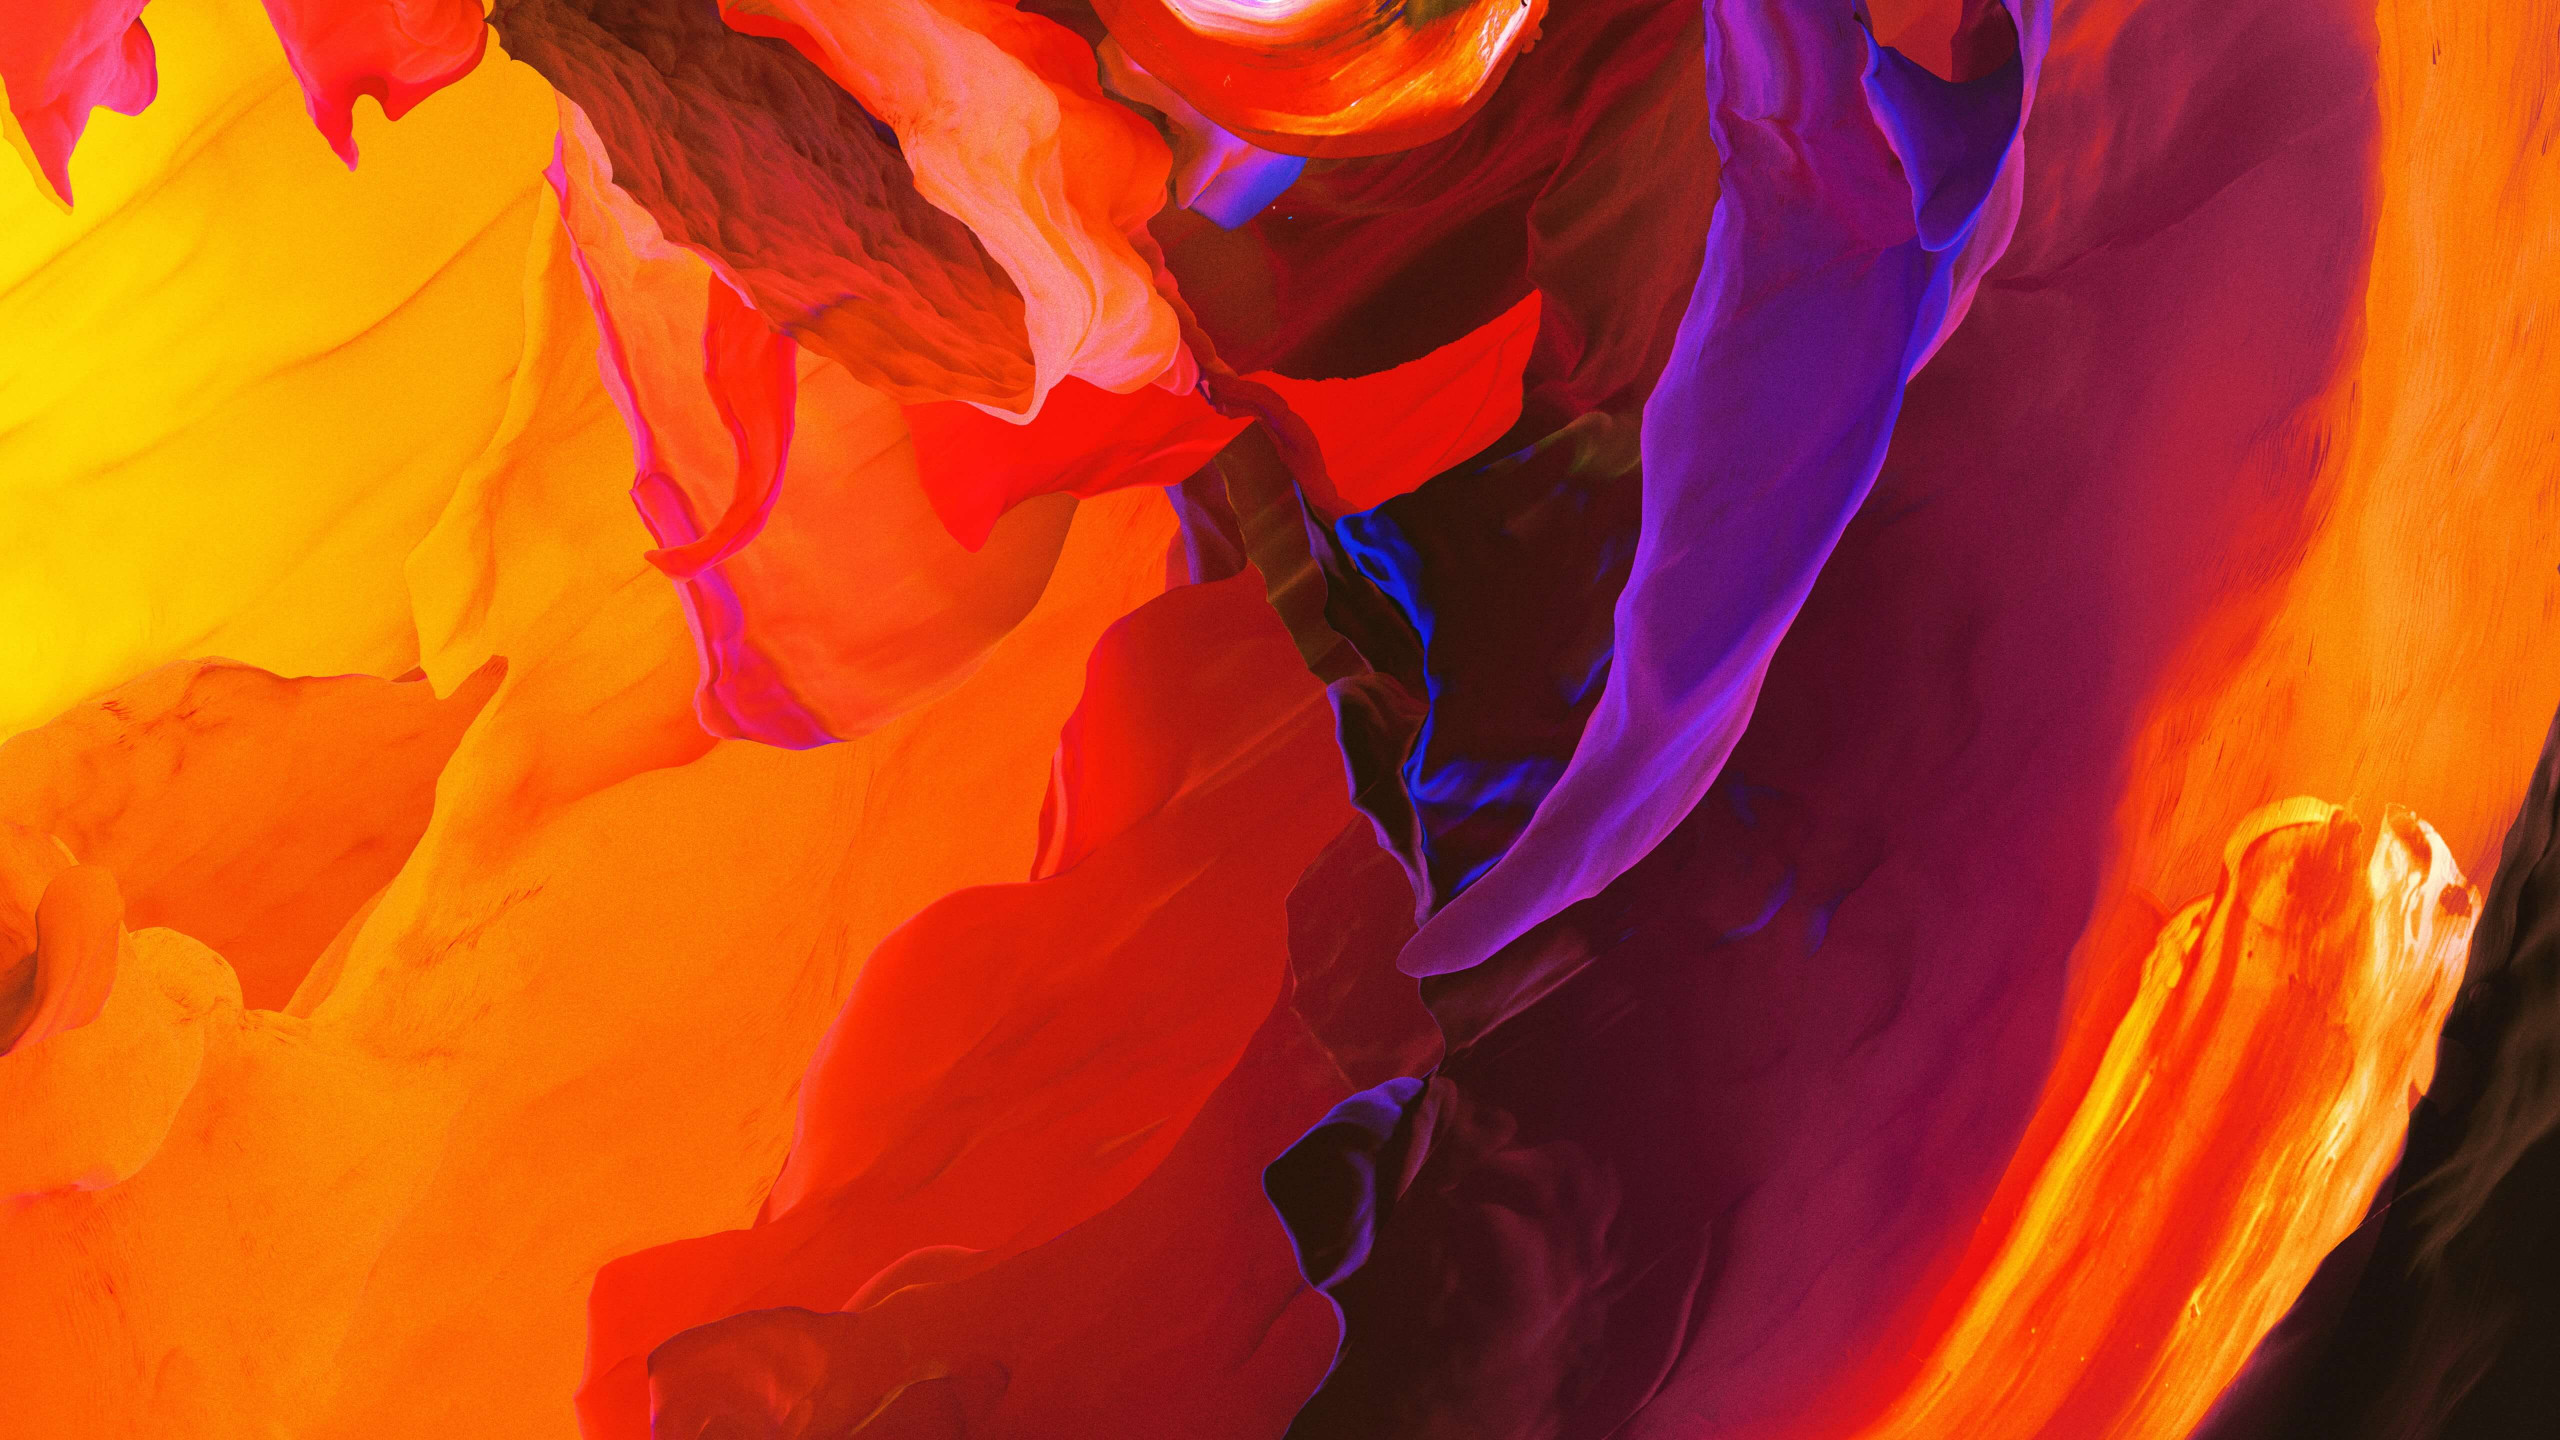 Red Orange Colorful Abstract wallpaper 2560x1440